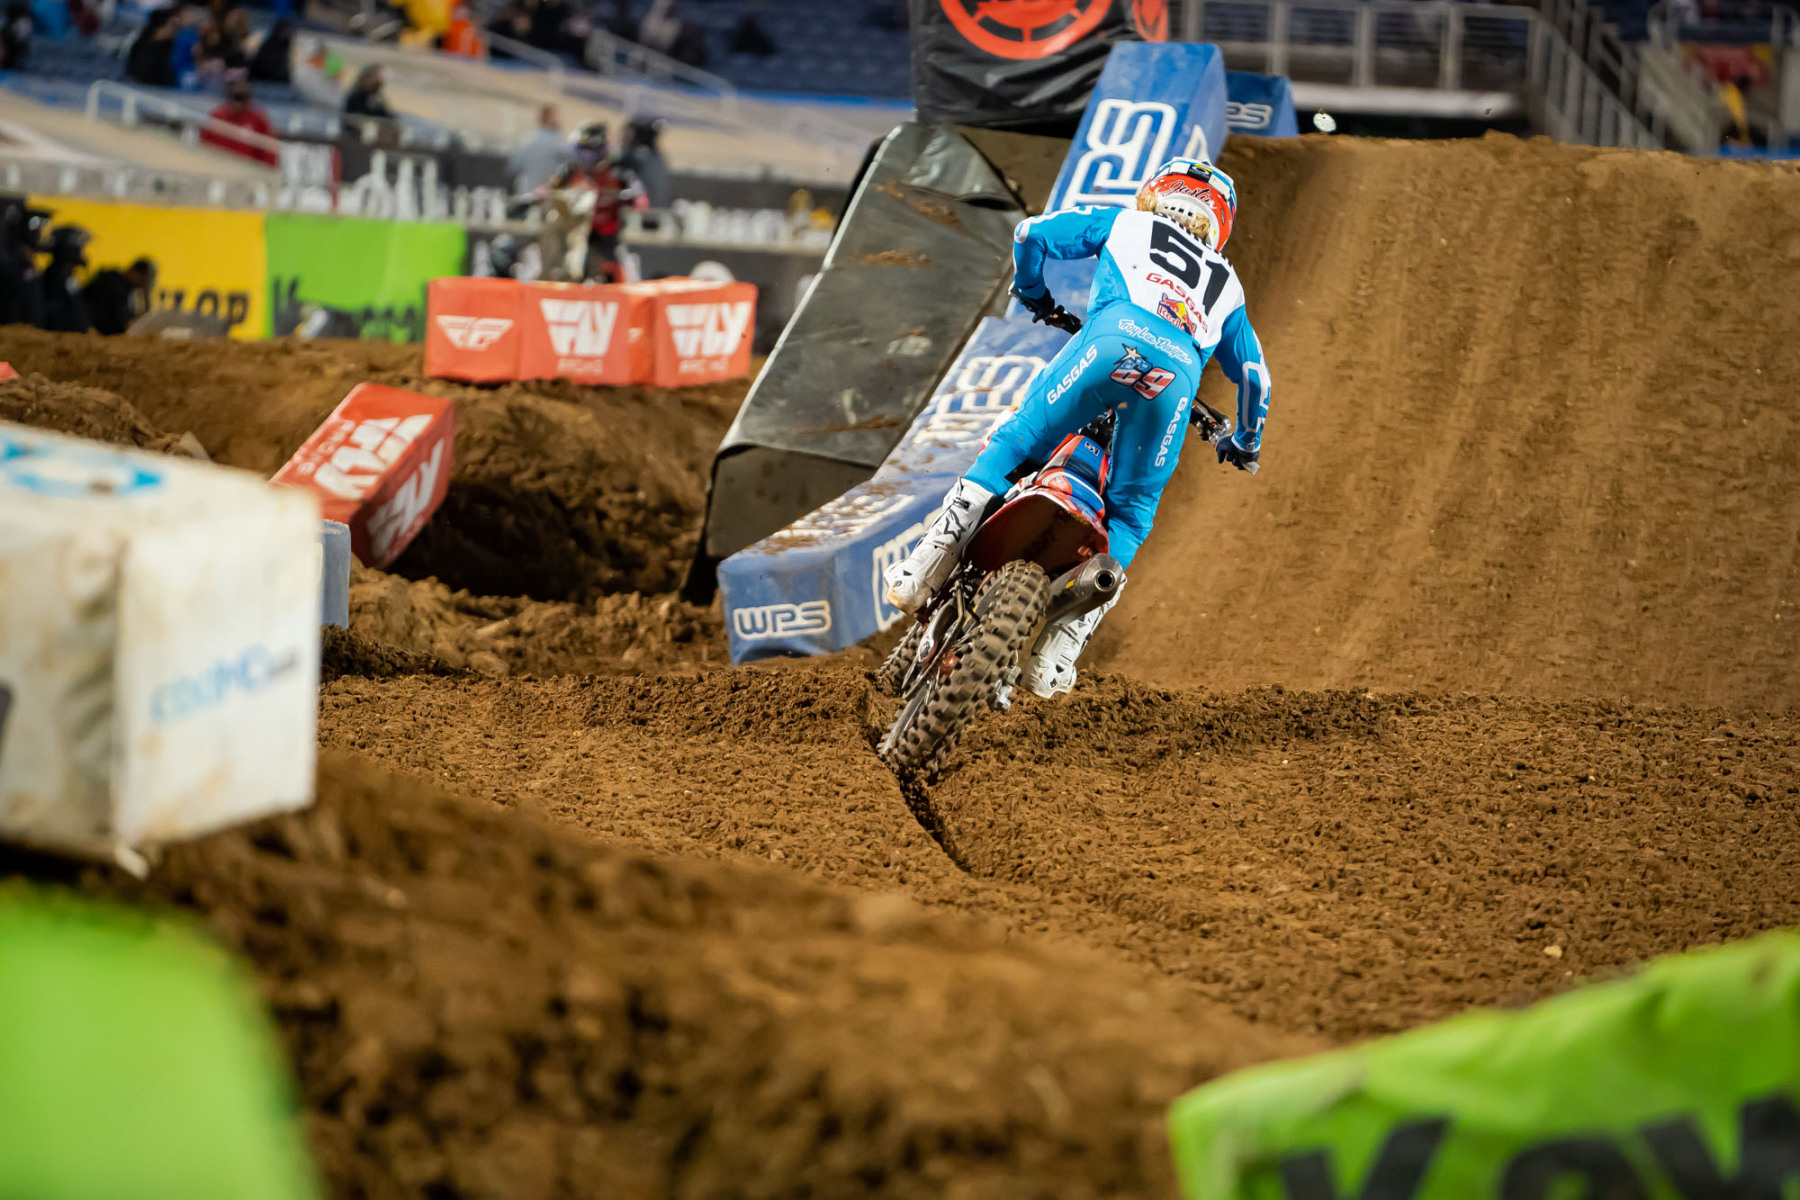 2021-ORLANDO-TWO-SUPERCROSS_KICKSTART_1561